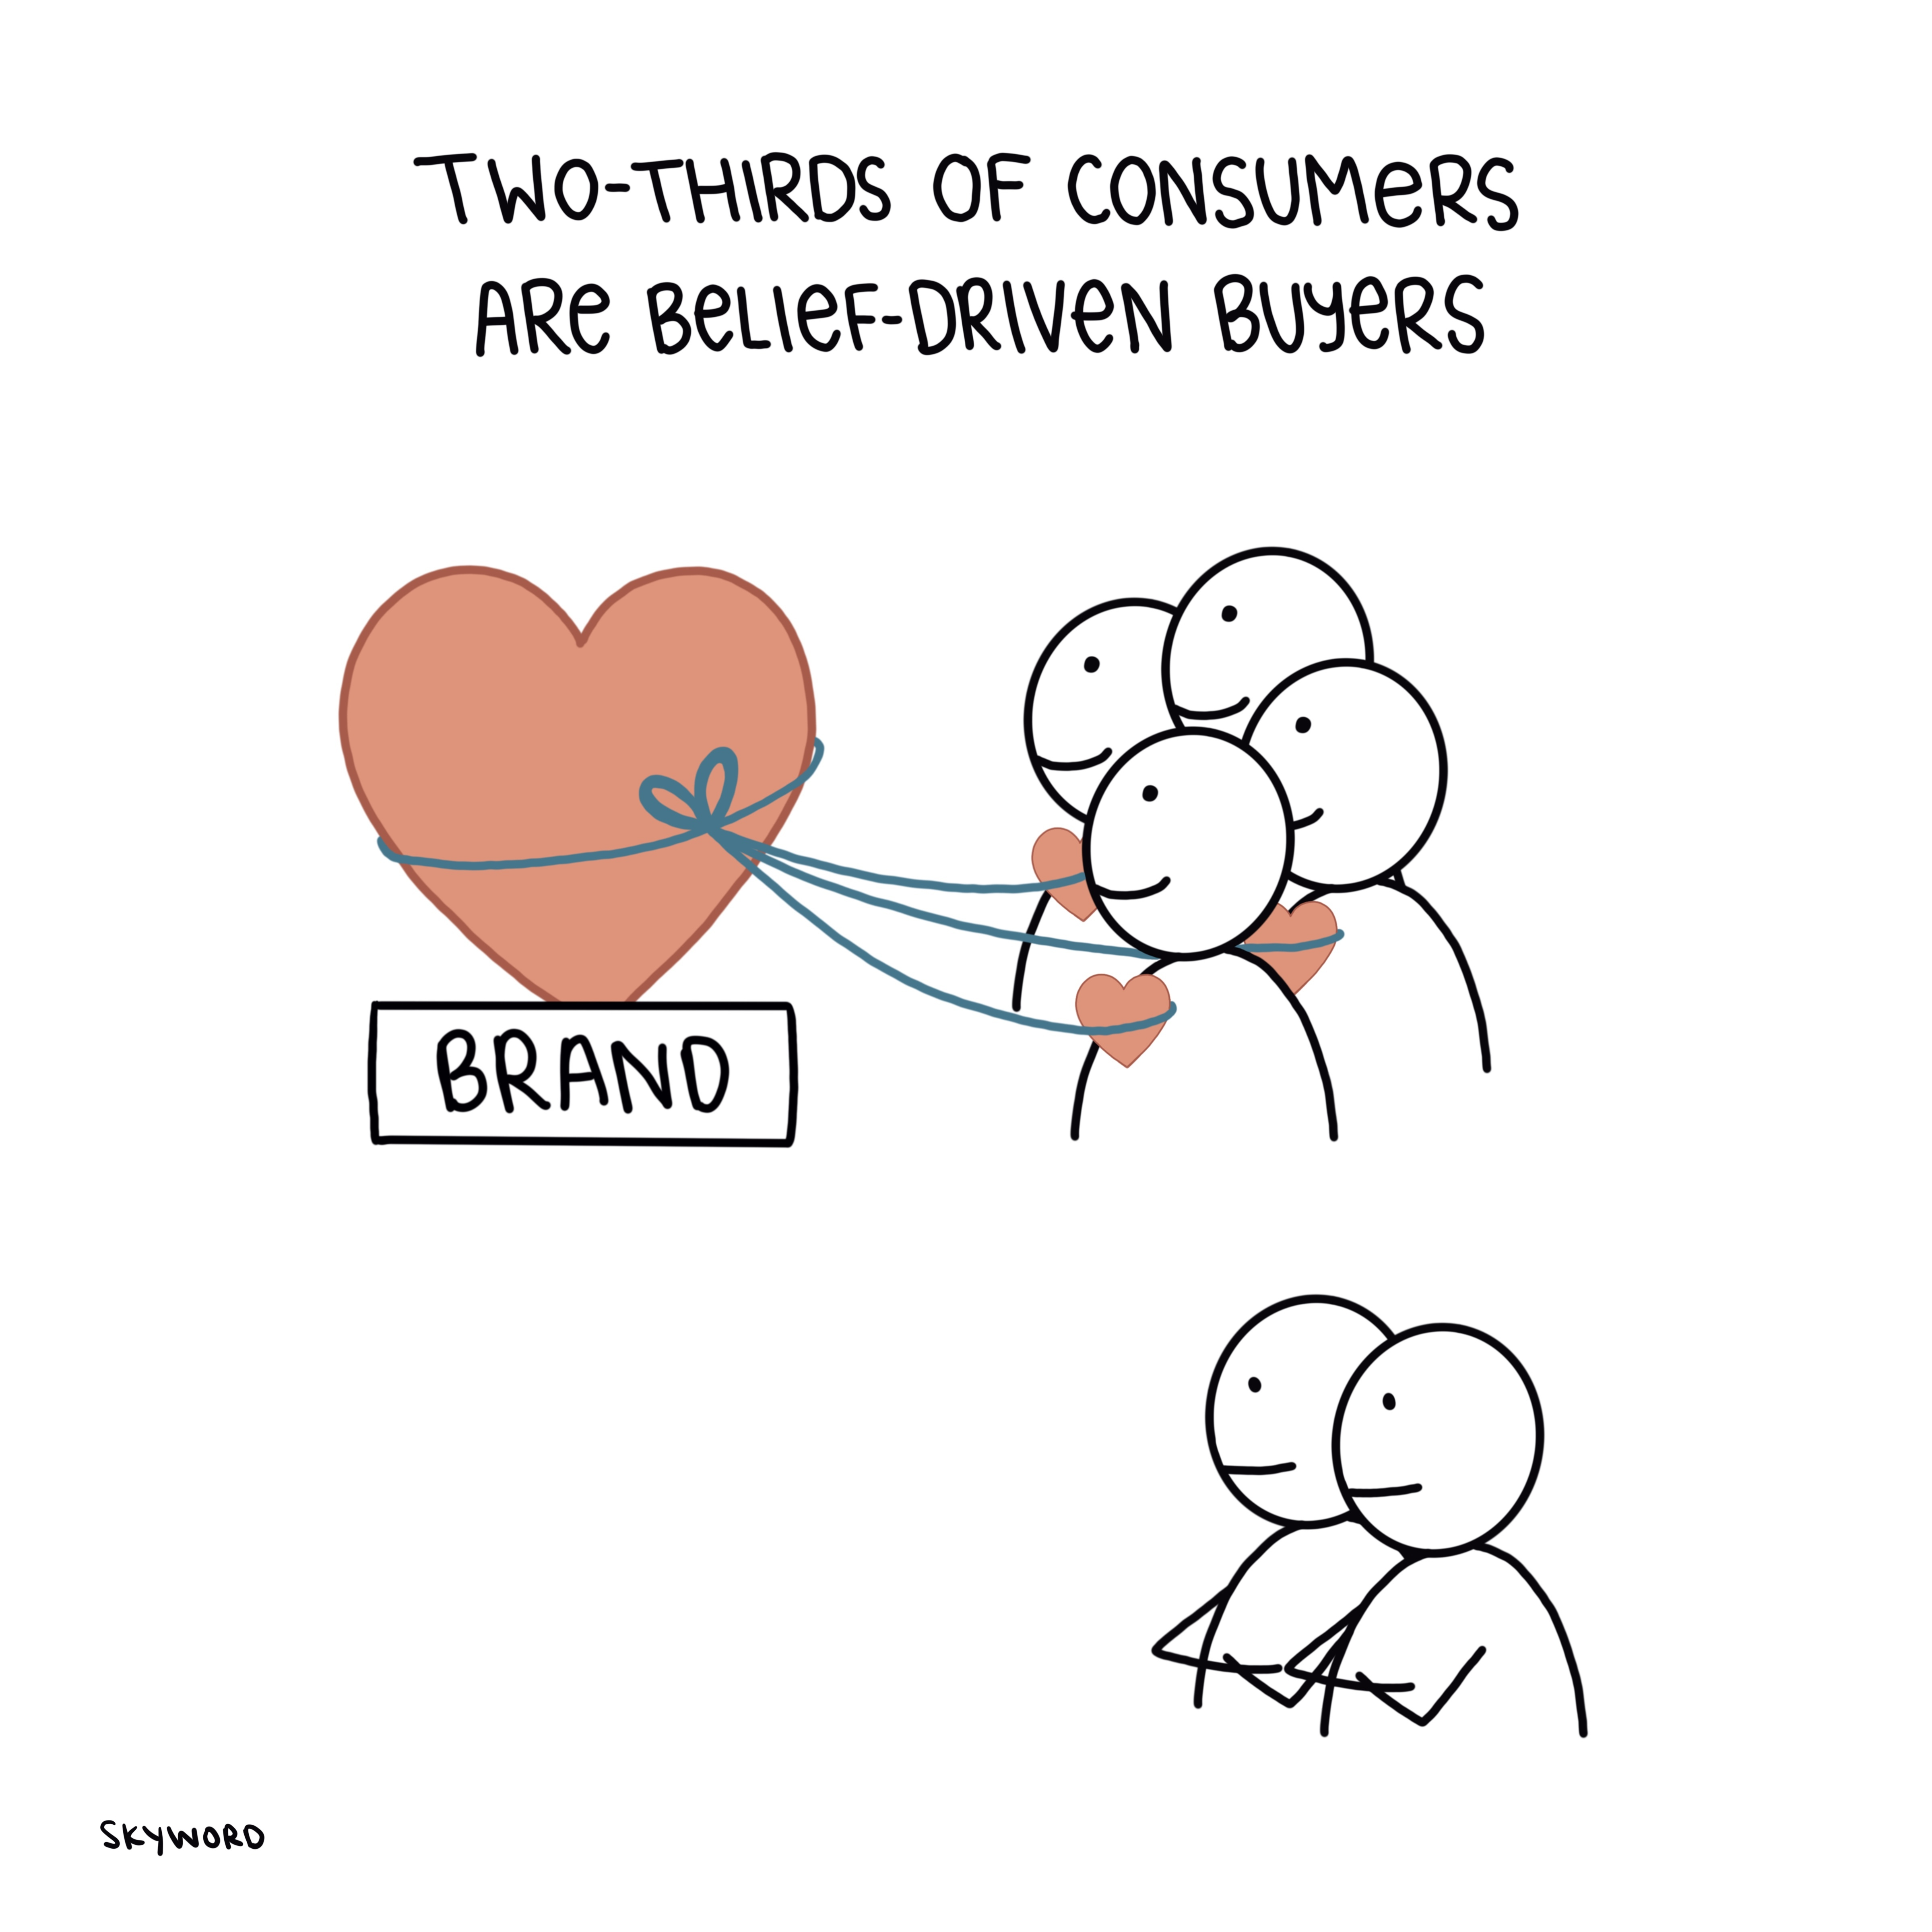 two-thirds of consumers are belief-driven buyers